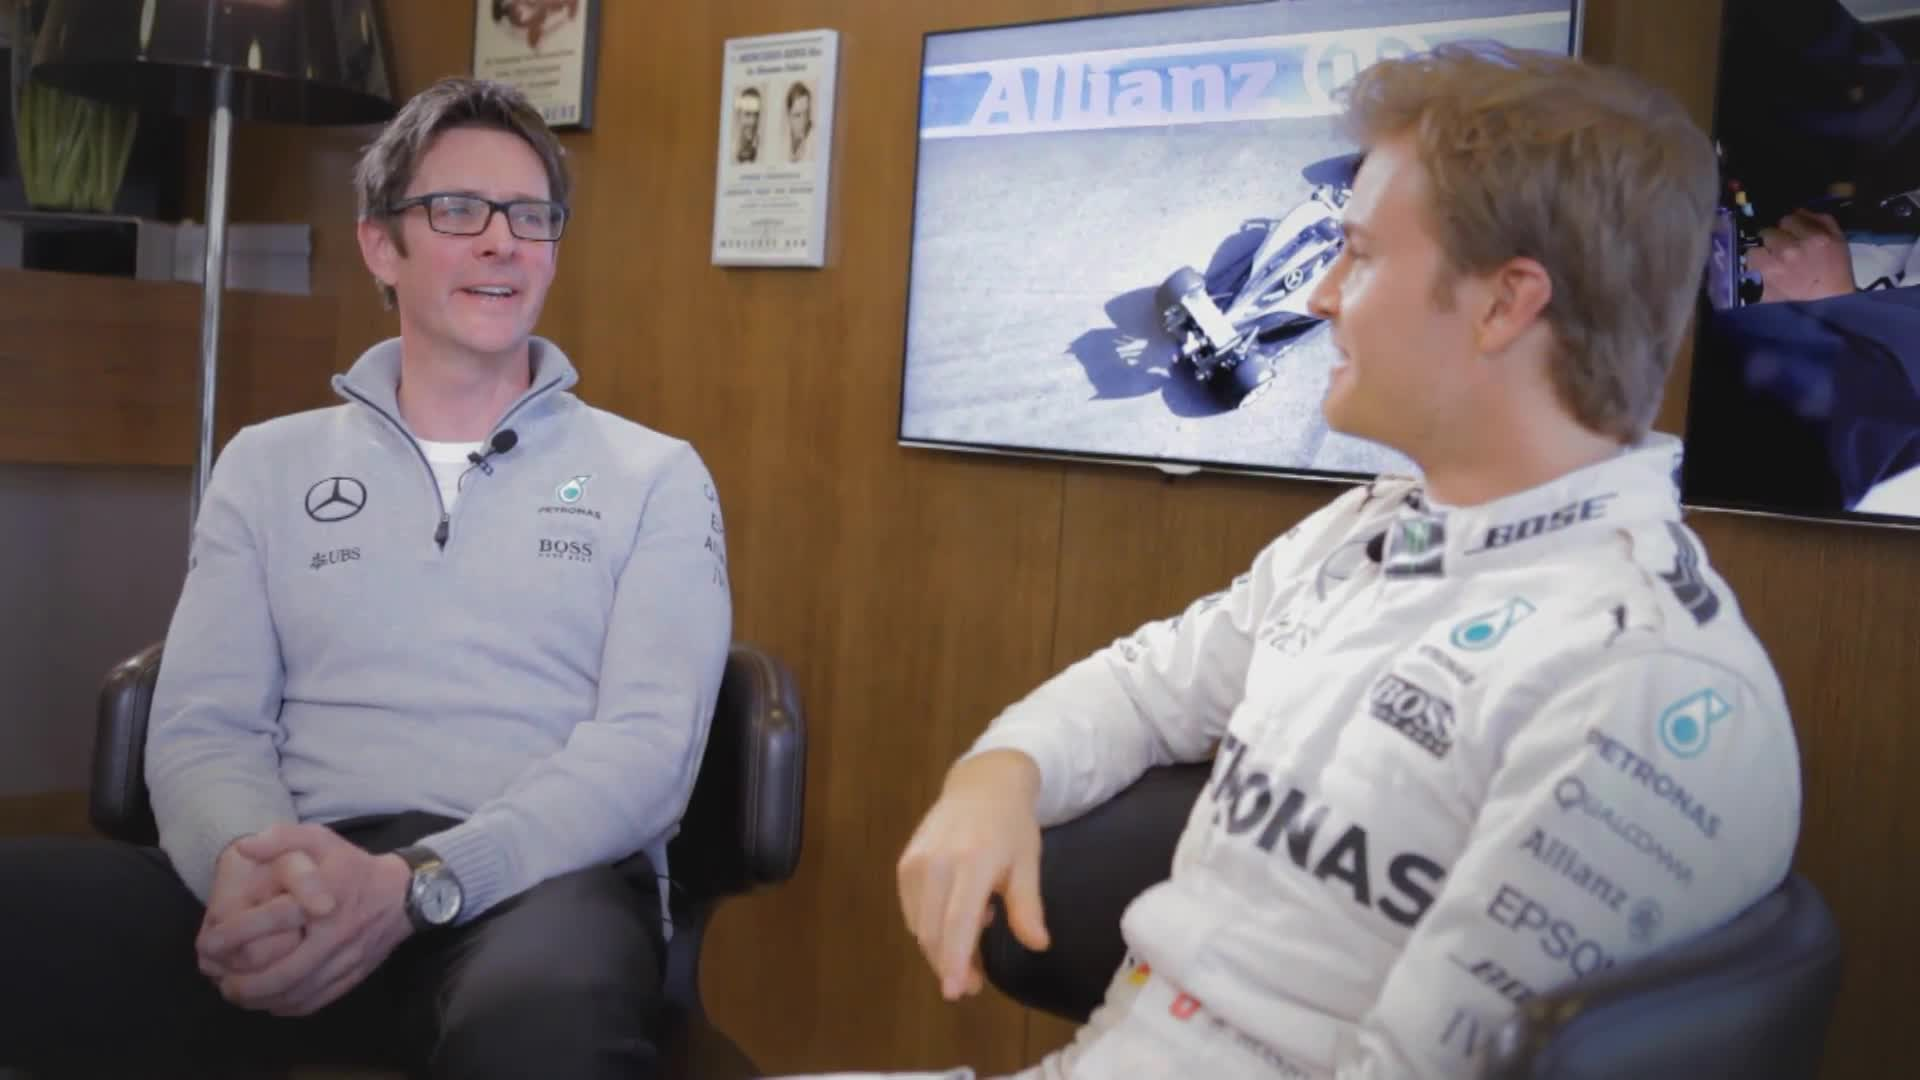 F1 Circuit Preview 2016 - Nico Rosberg - Risk Management at the Monaco GP